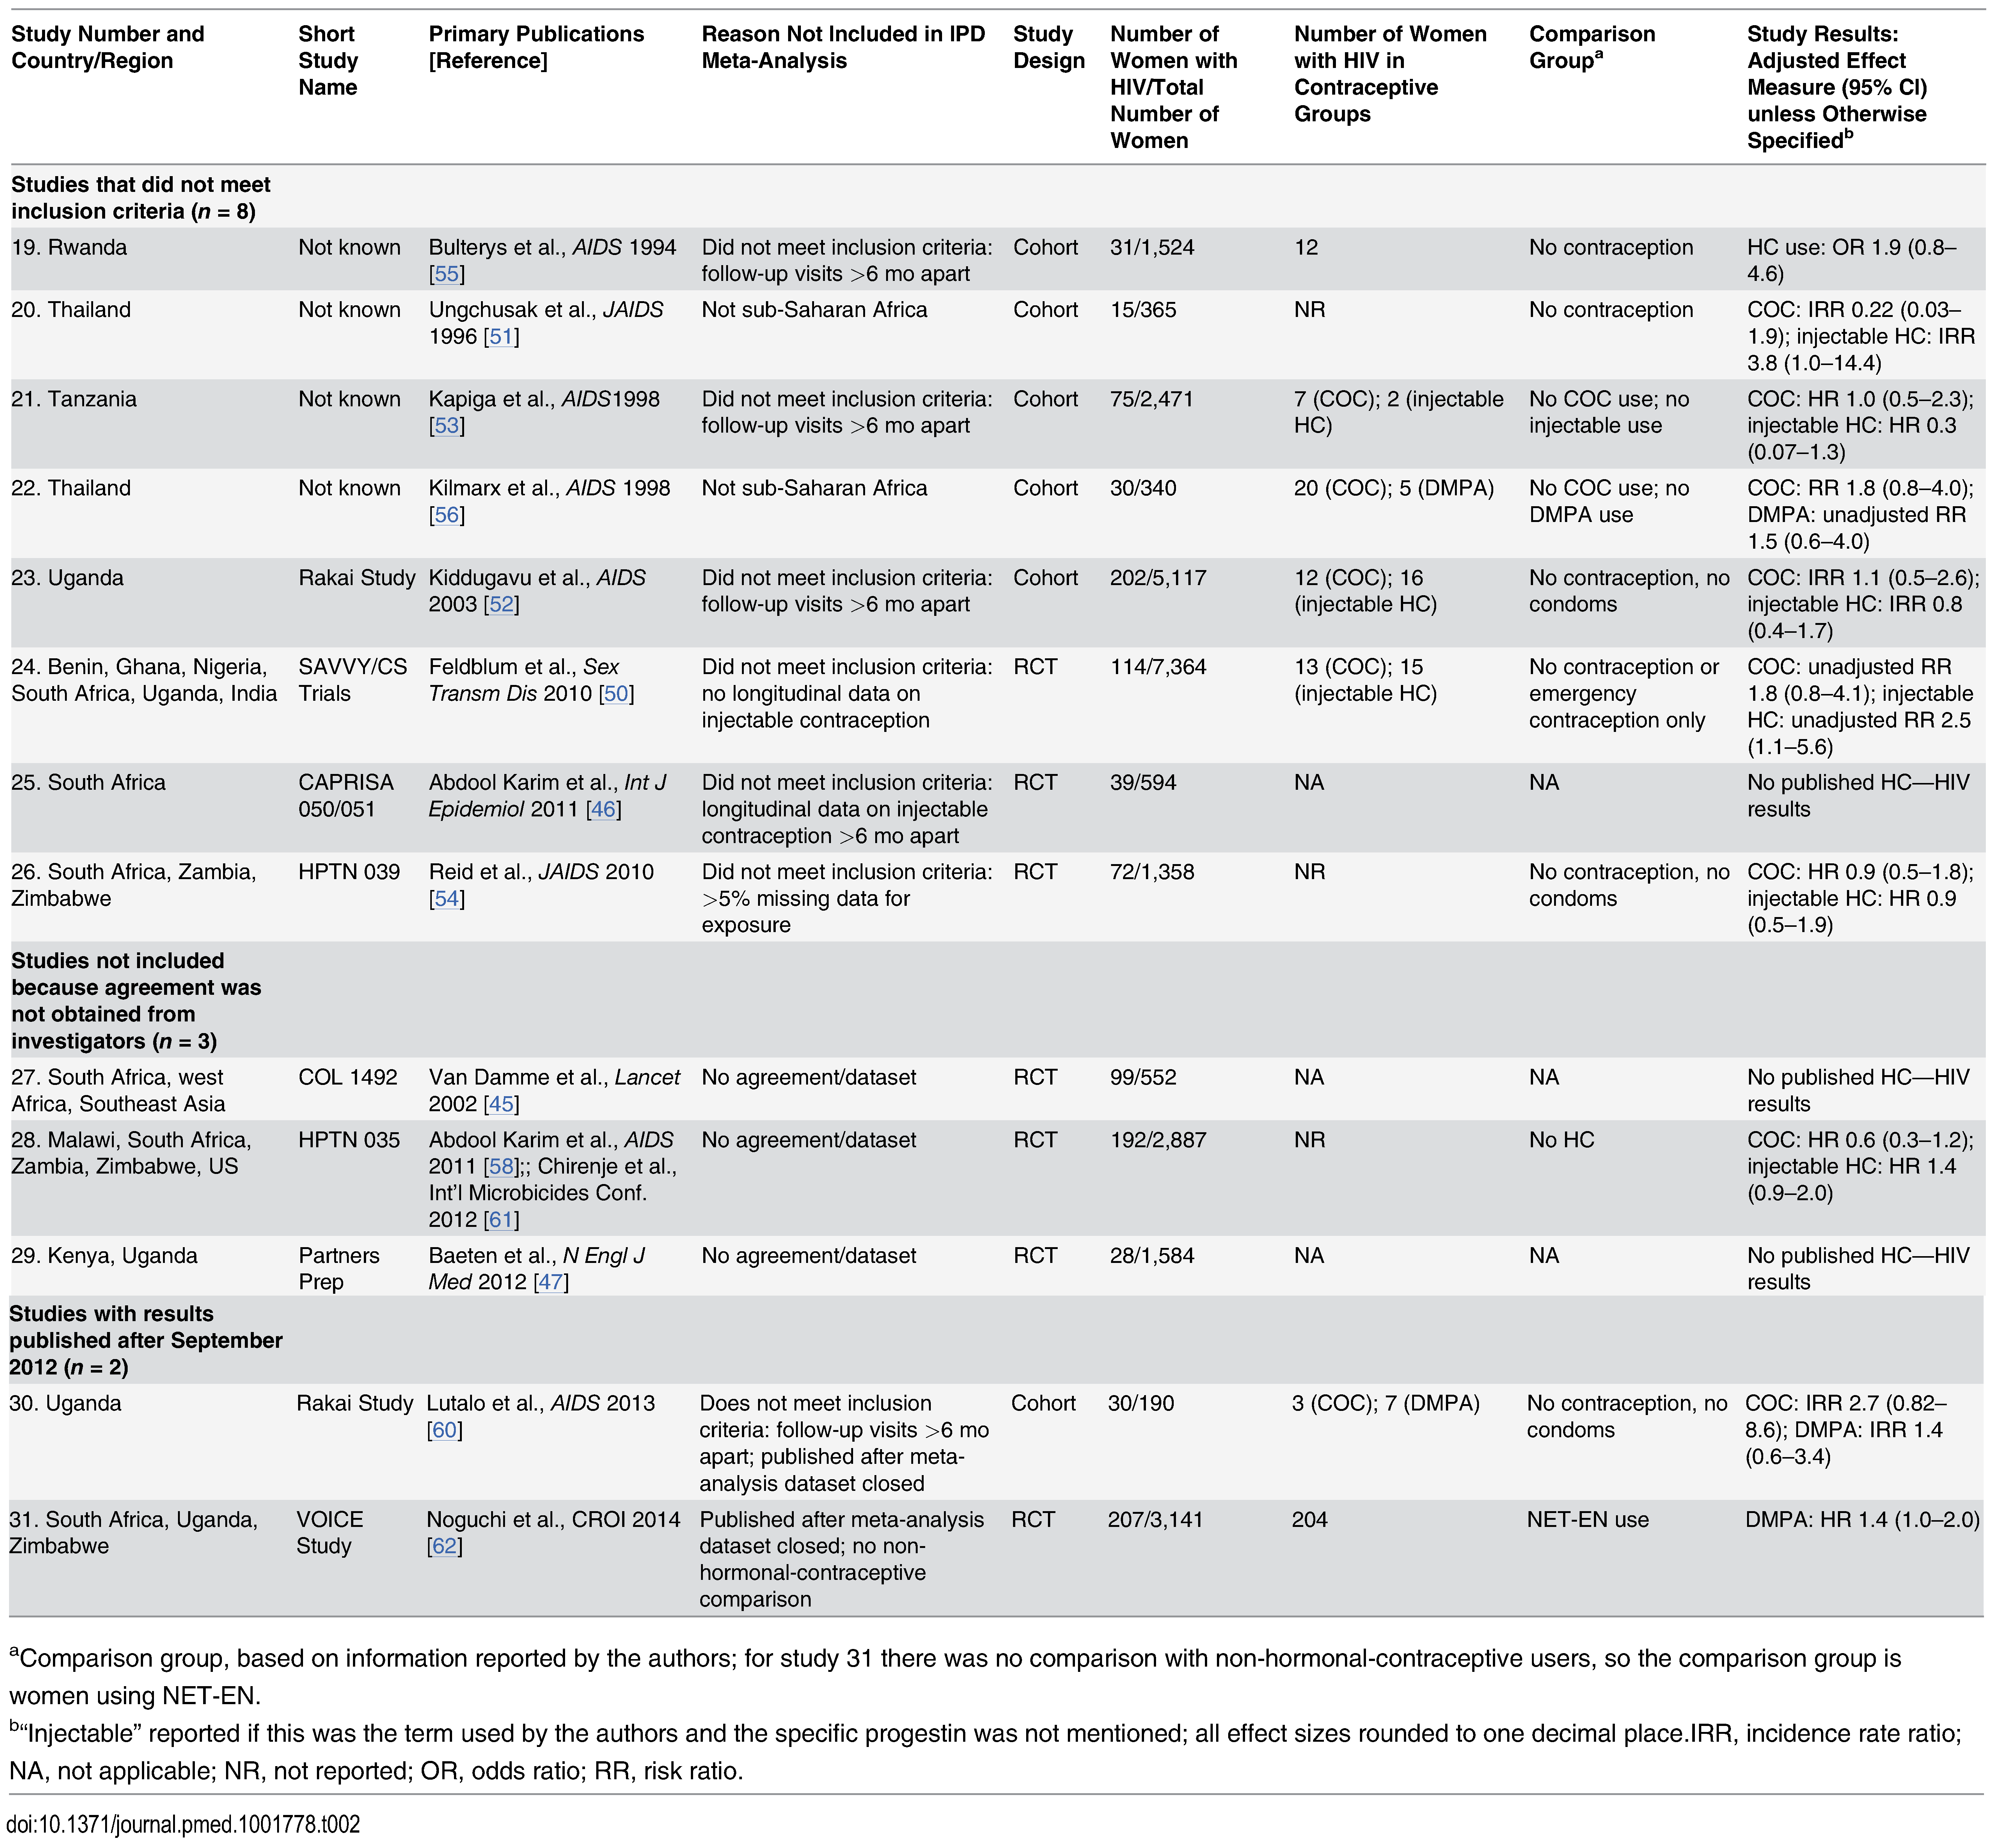 Characteristics of studies not included in the individual participant data meta-analysis.